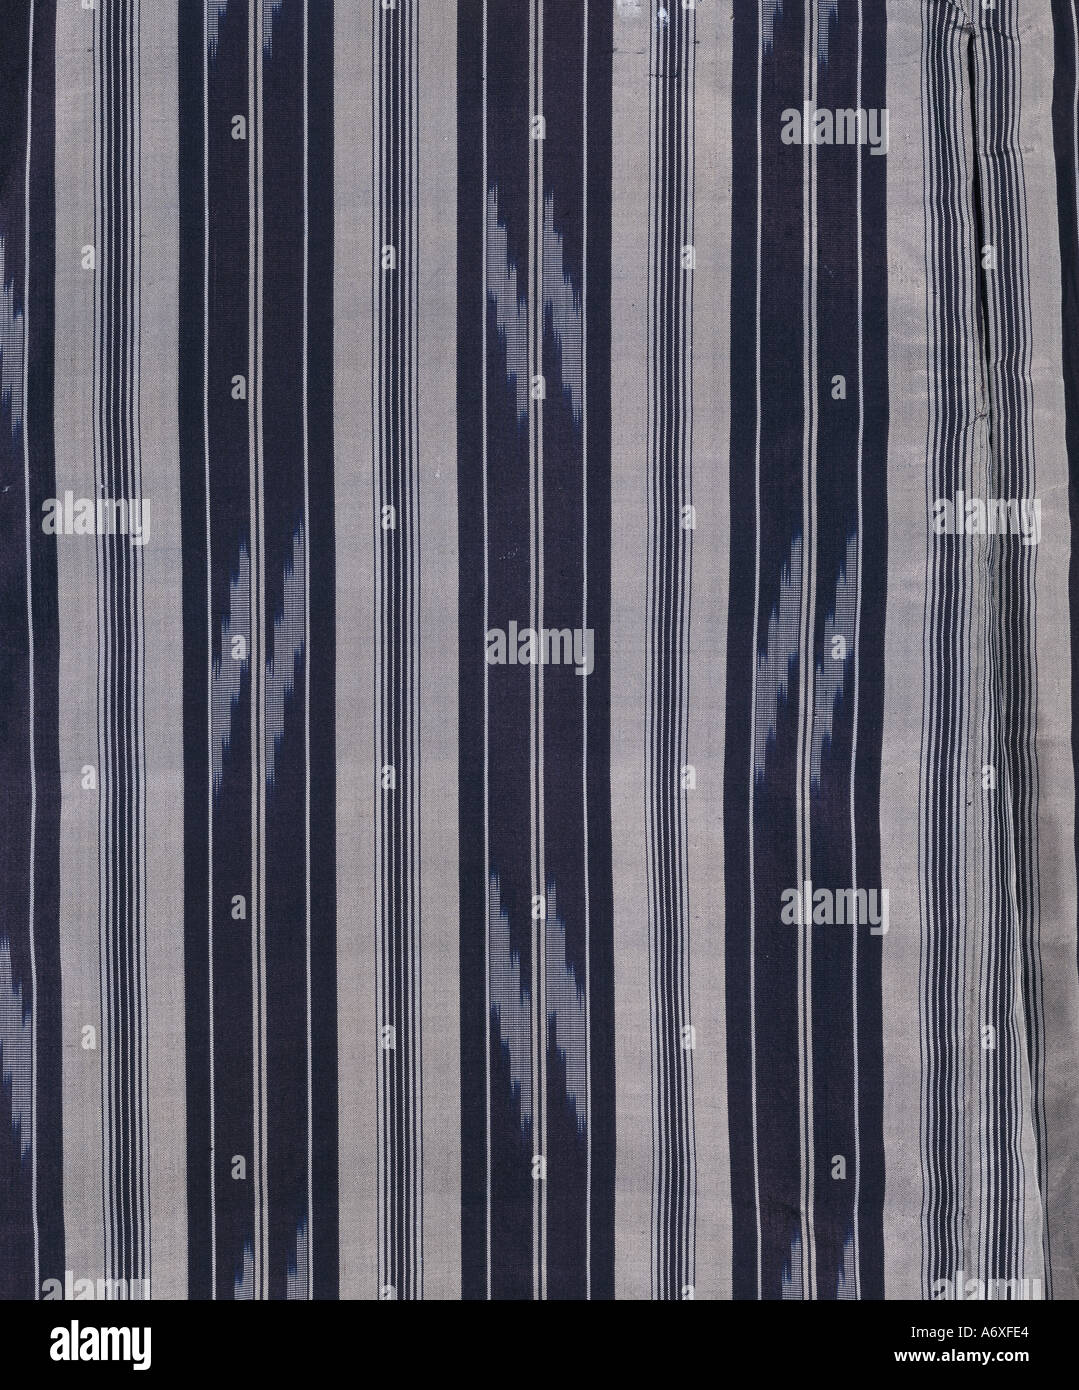 Stripes on kimono. Japan, late 19th century. - Stock Image